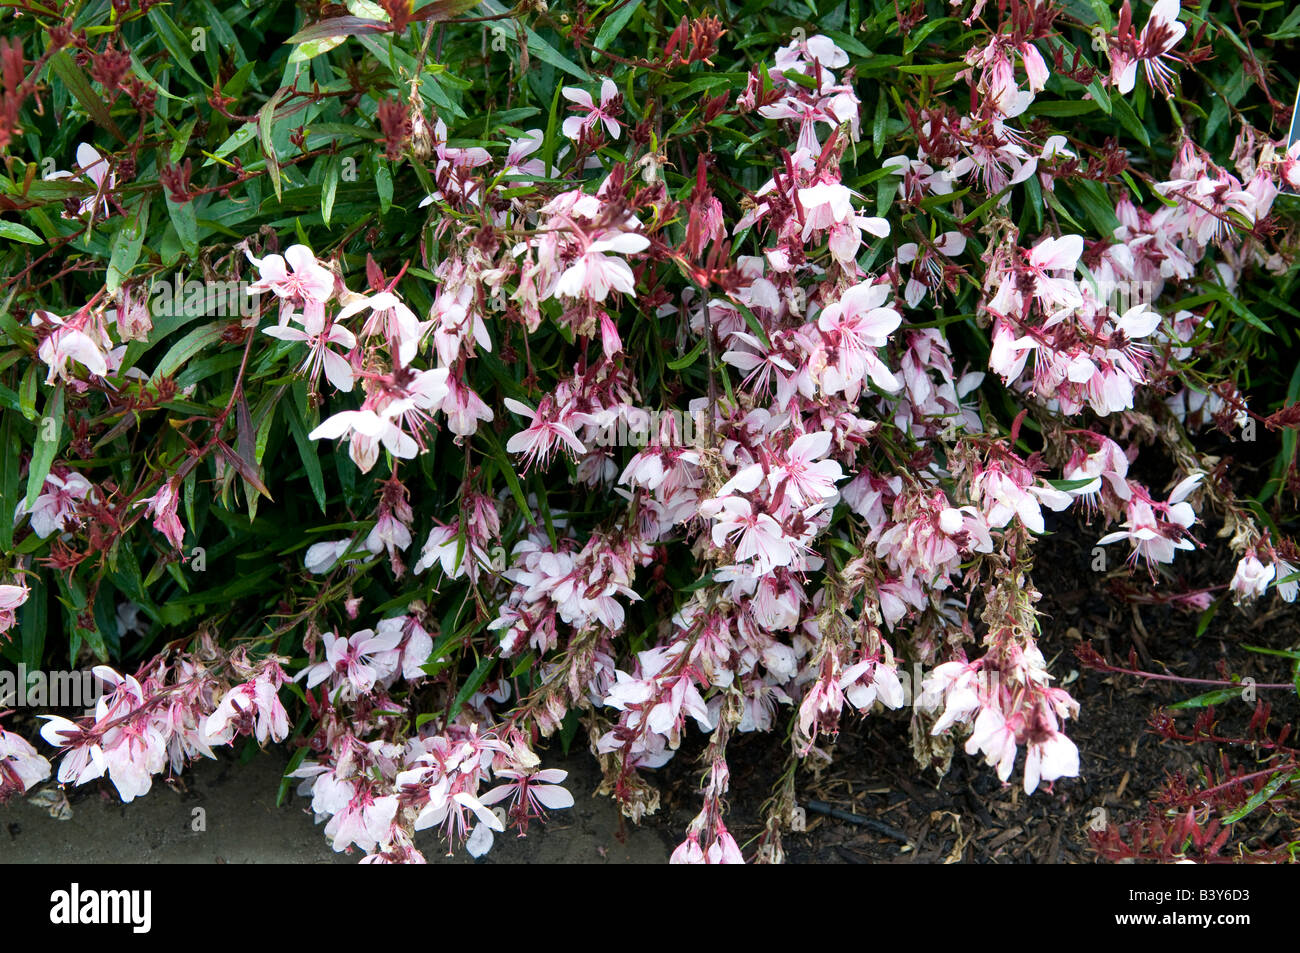 Gaura Lindheimeri `Passion Blush` - Stock Image